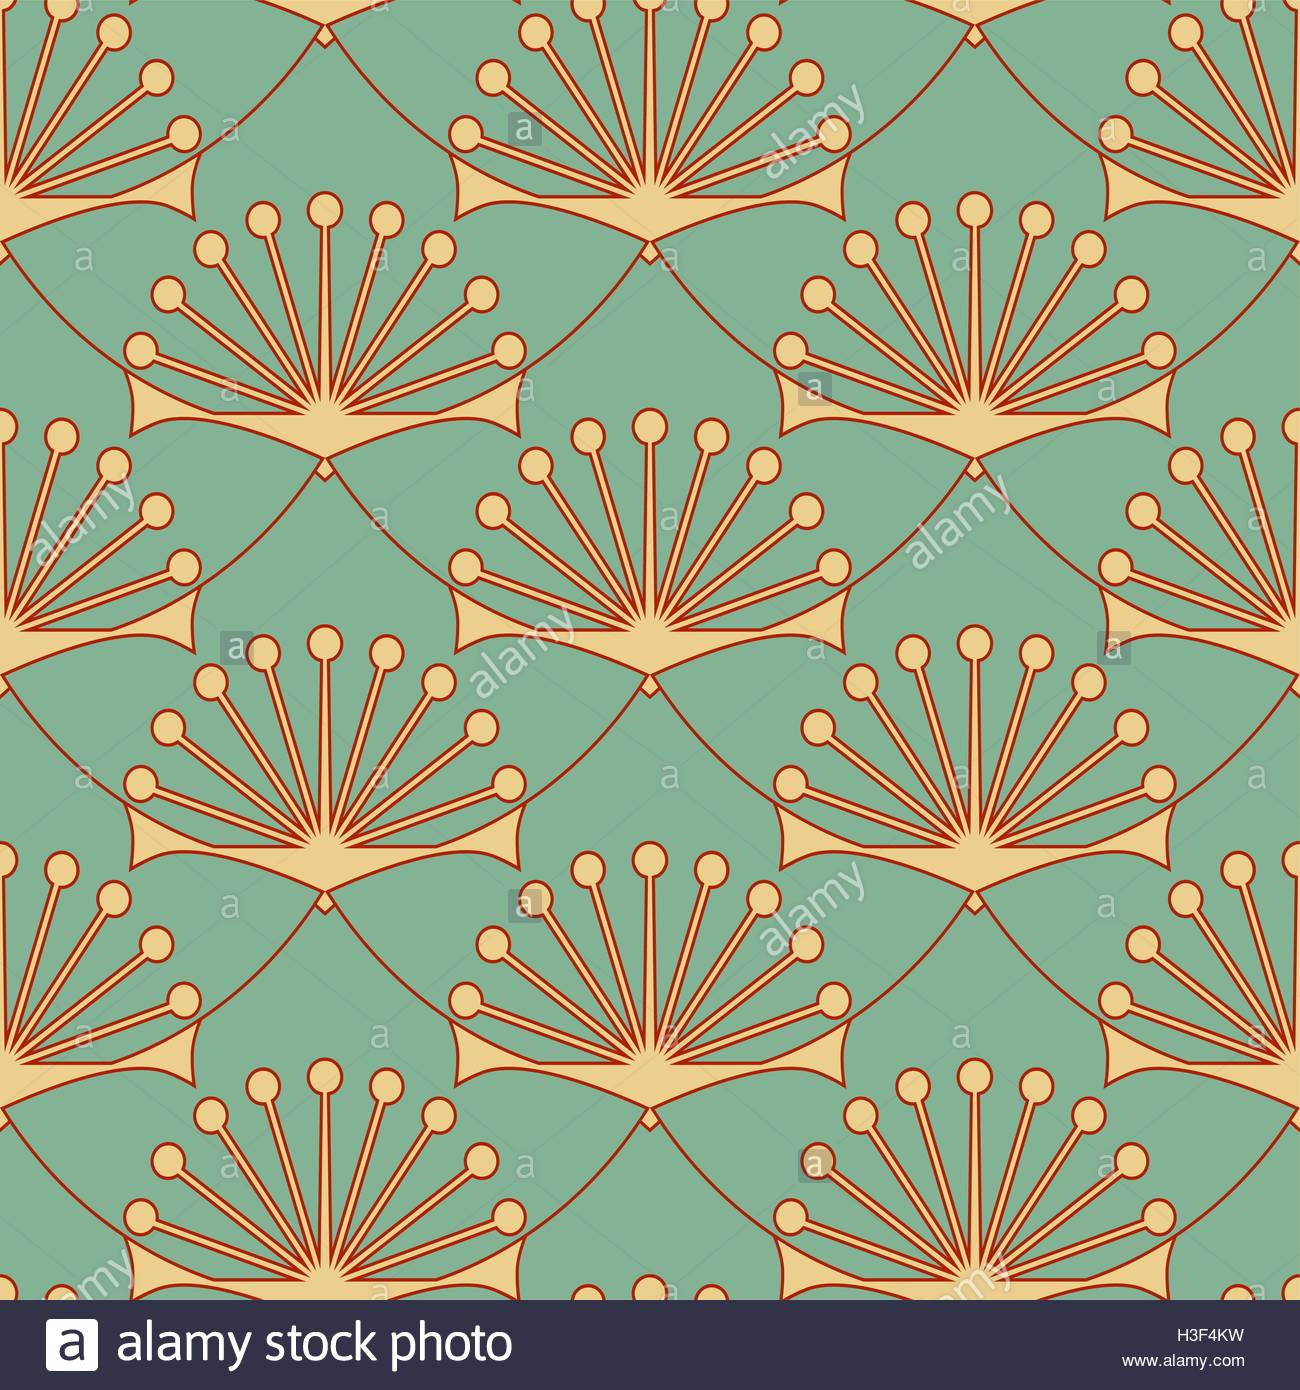 Yoga pattern background seamless pattern with five petals lotus flower - Stylized Lotus Flower Seamless Pattern In Blue And Red Shades Stock Vector